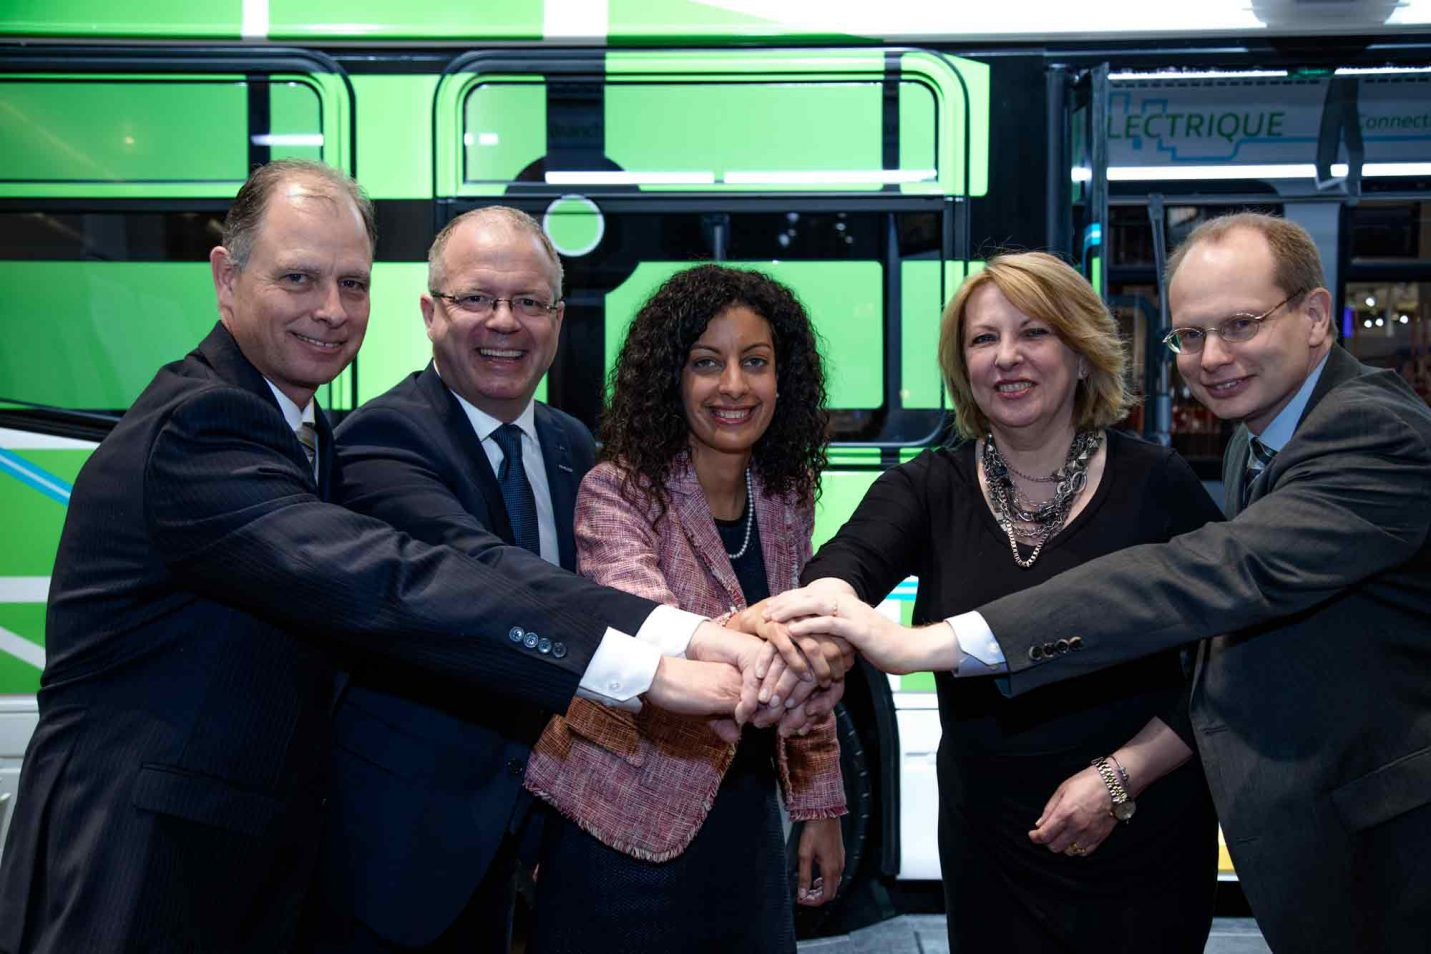 Nova Bus announces a major investment project in factories with support of the Government of Quebec